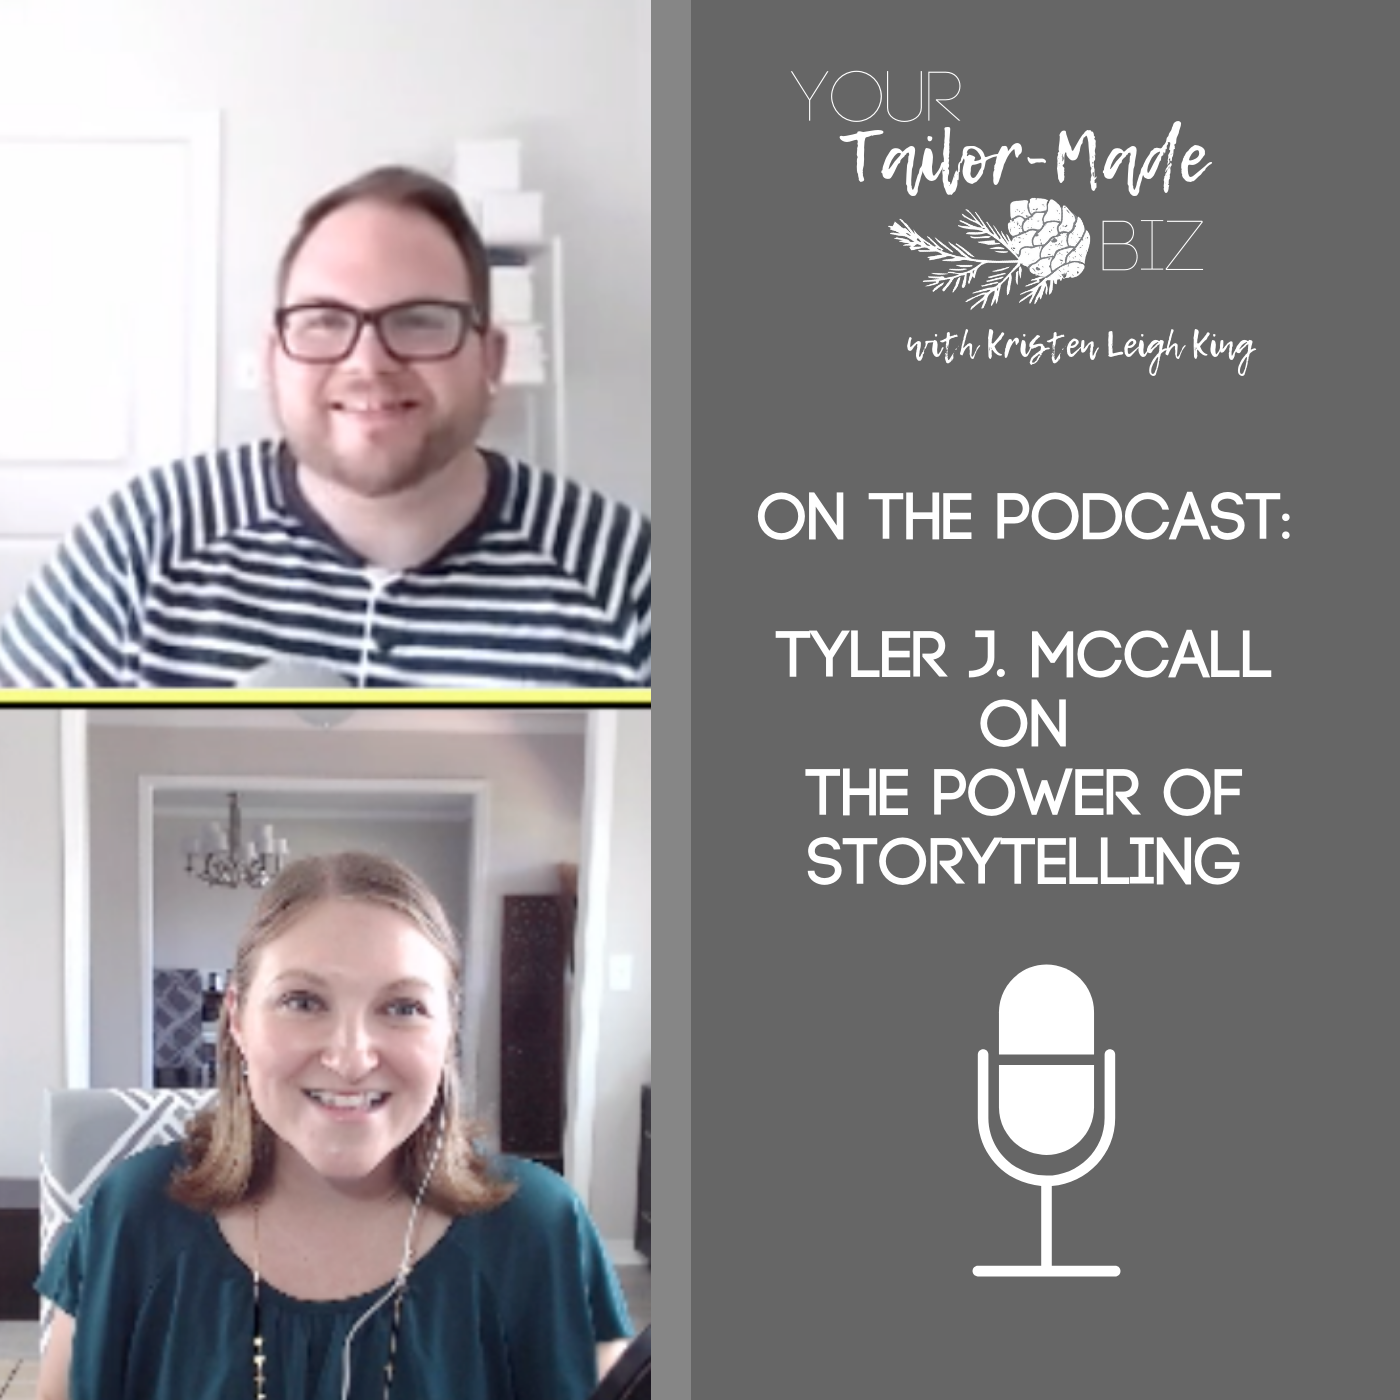 Tyler J McCall on the power of storytelling on the Your Tailor-Made Biz podcast with Kristen Leigh King